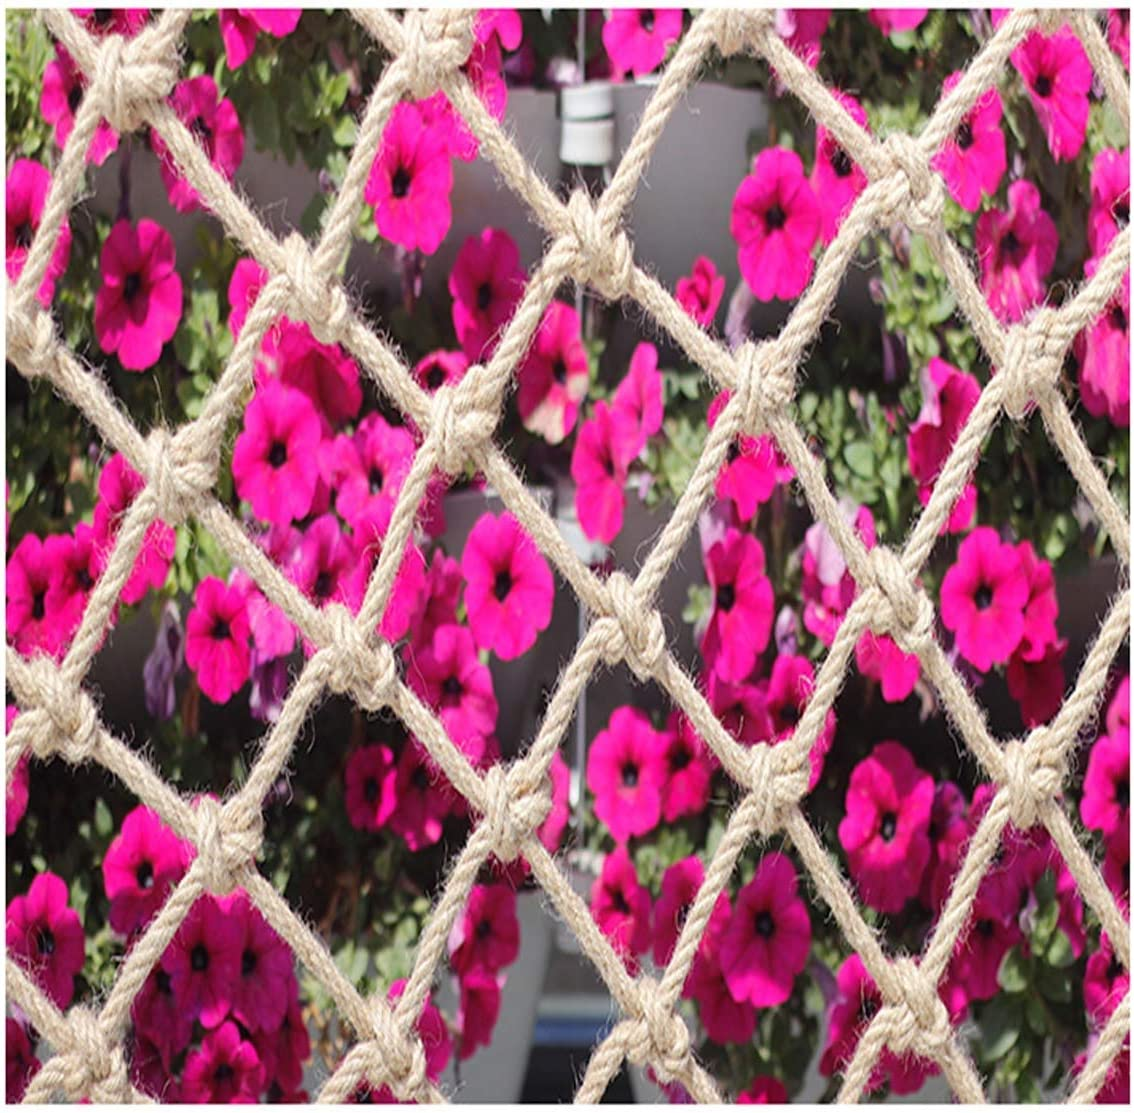 Hemp Rope Partition Net 8mm Restaurant Banquet Ranking TOP13 10cm Decoration Complete Free Shipping